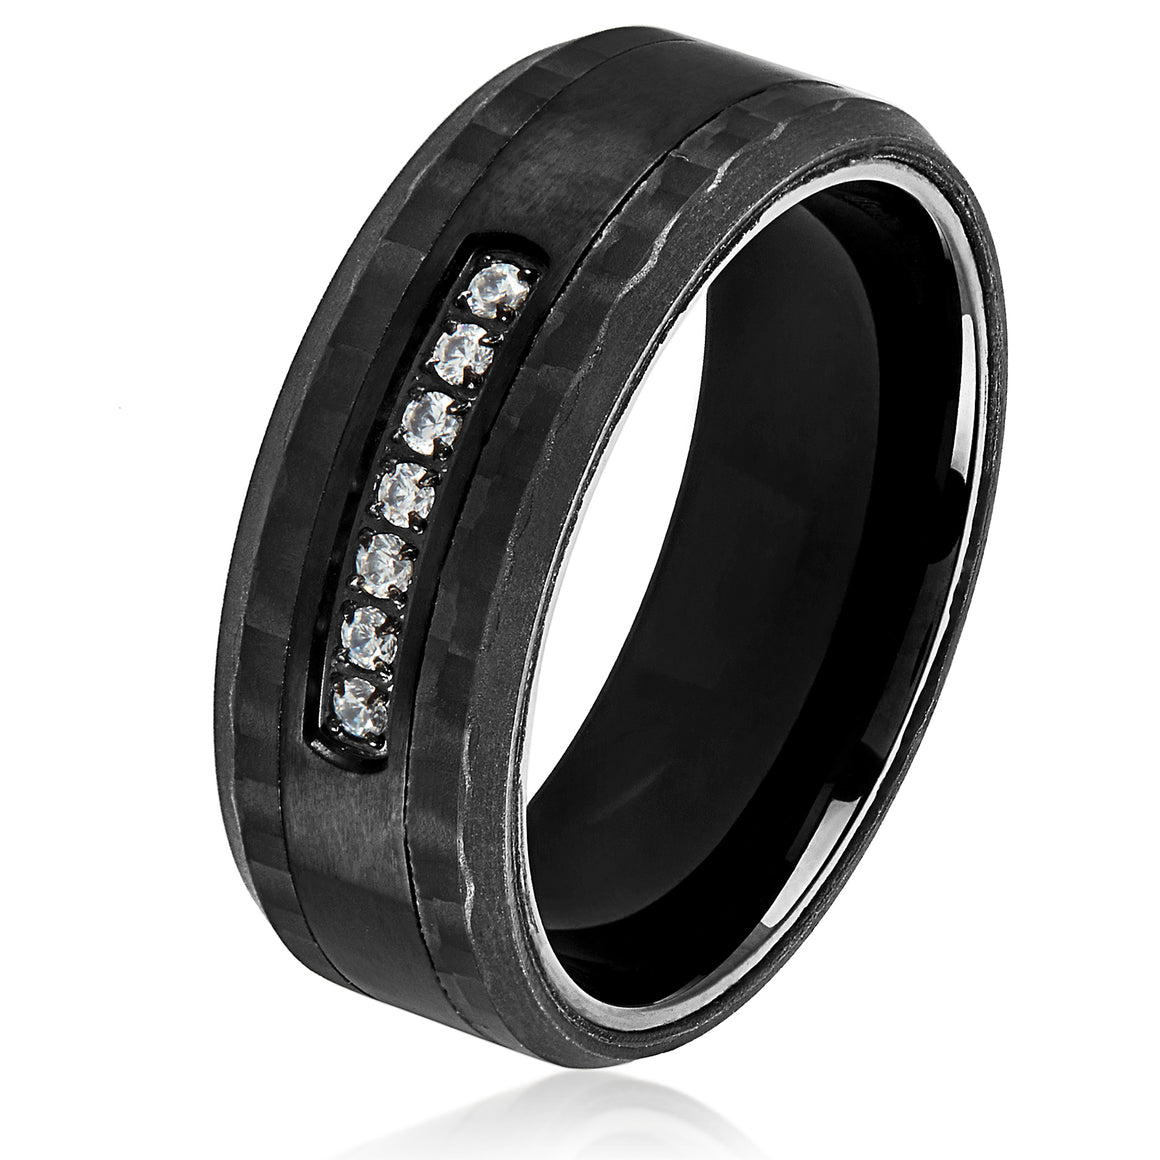 Crucible Men's Stainless Steel Carbon Fiber Semi Eternity Cubic Zirconia Ring